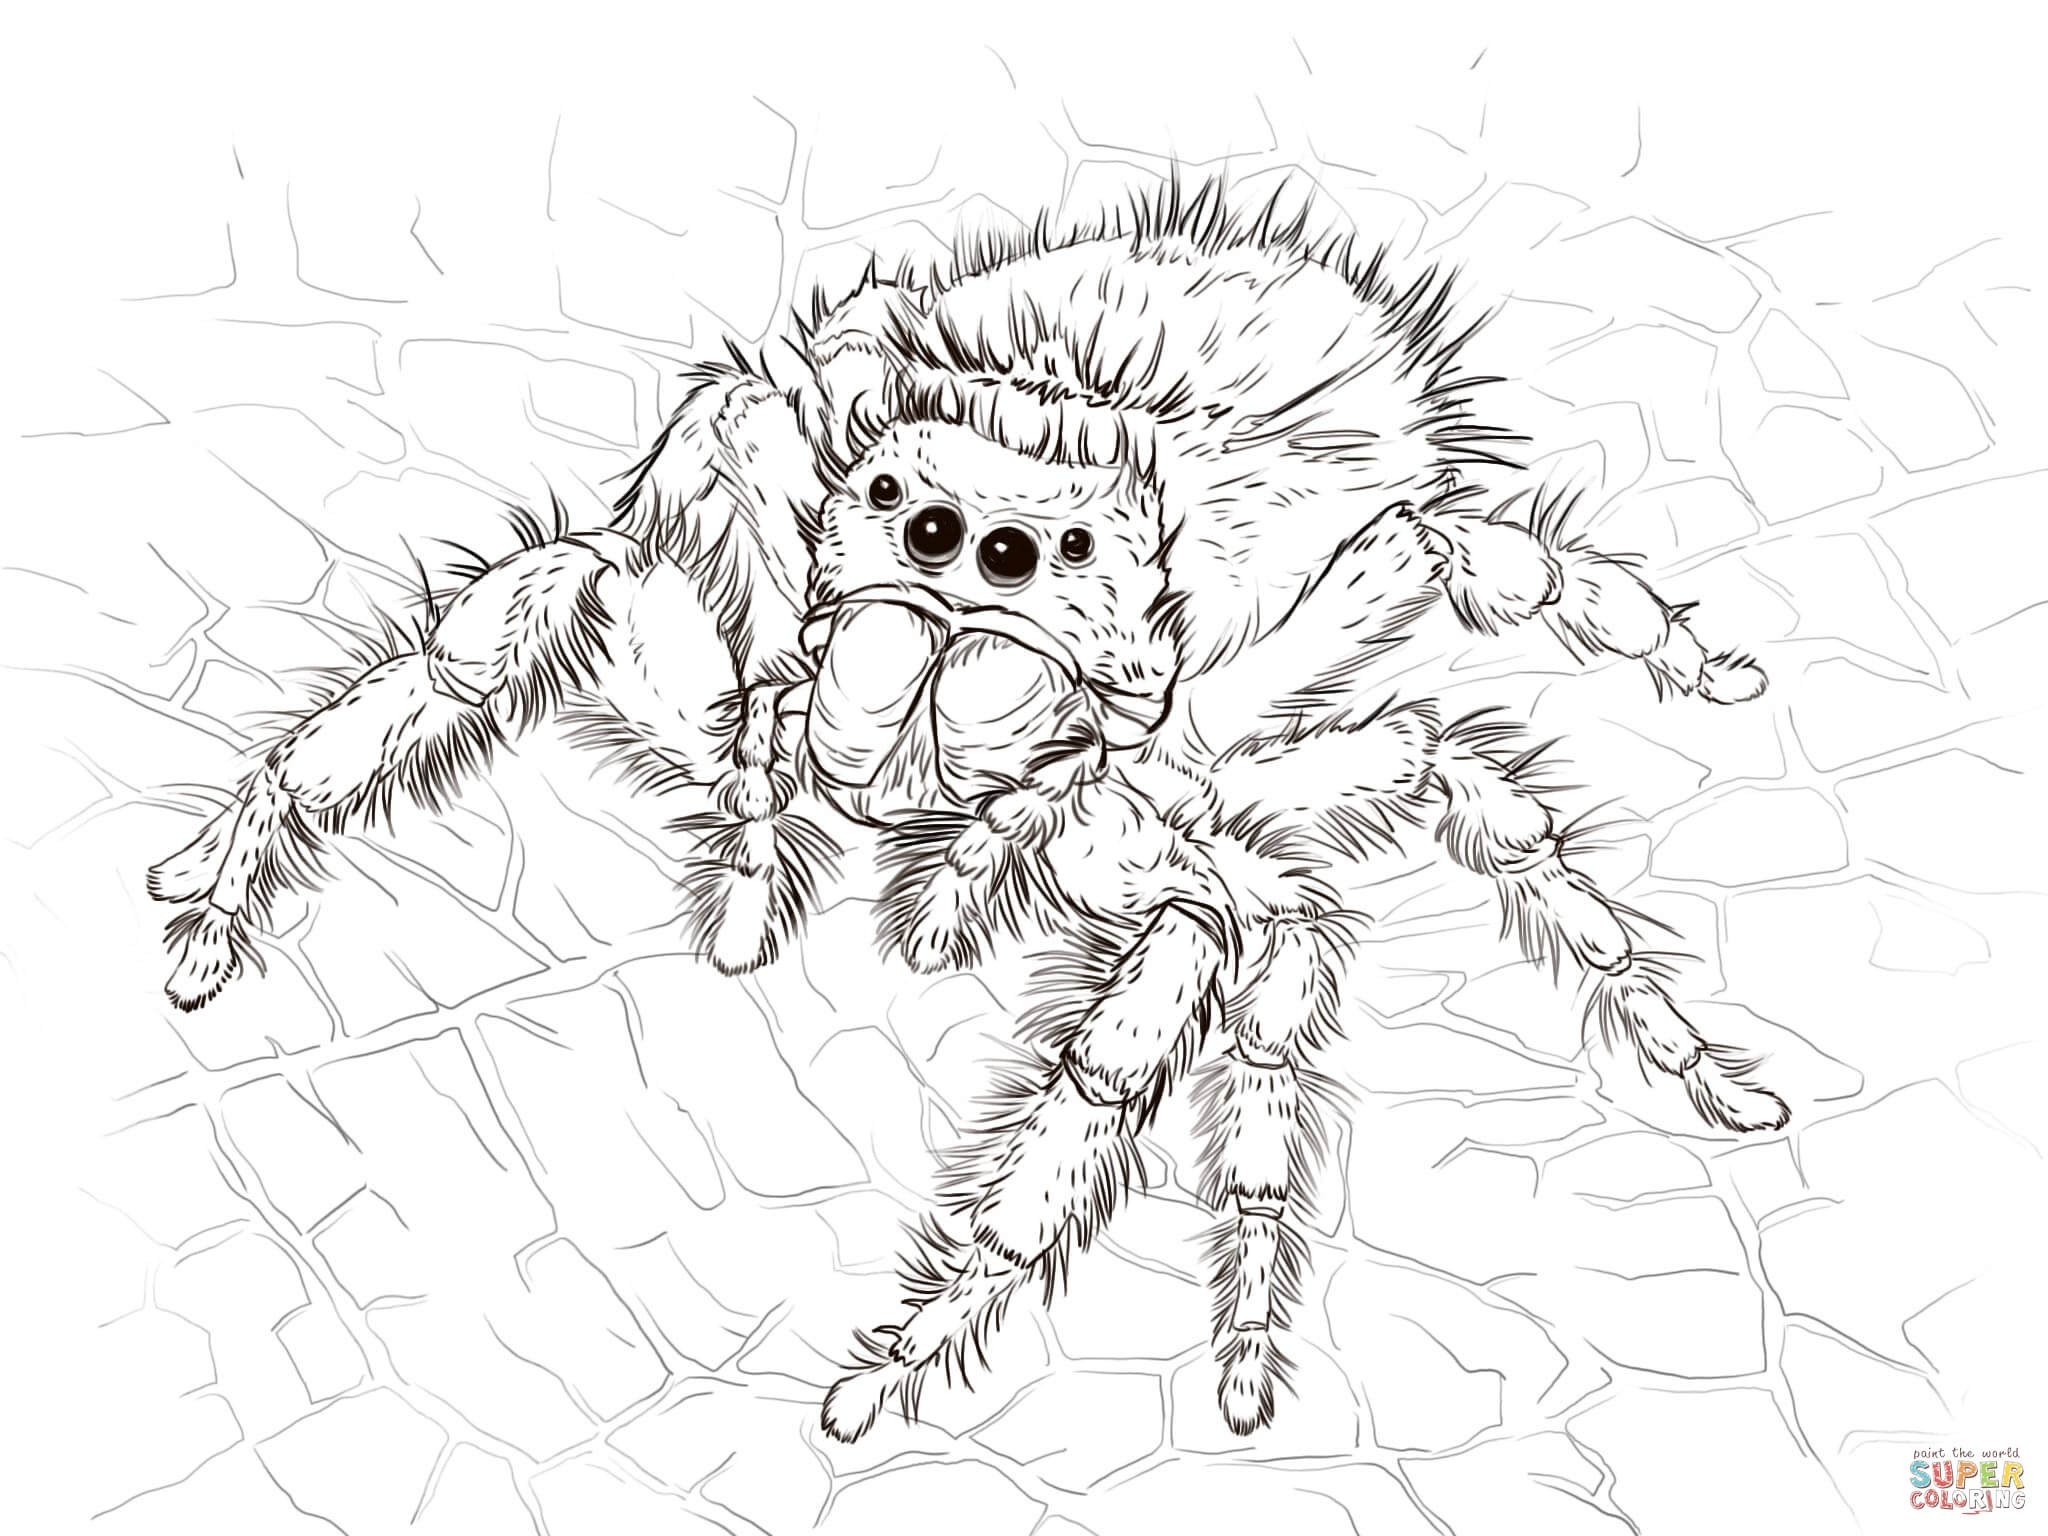 2048x1536 Spider Man Web Of Shadows Coloring Pages Free Draw To Color